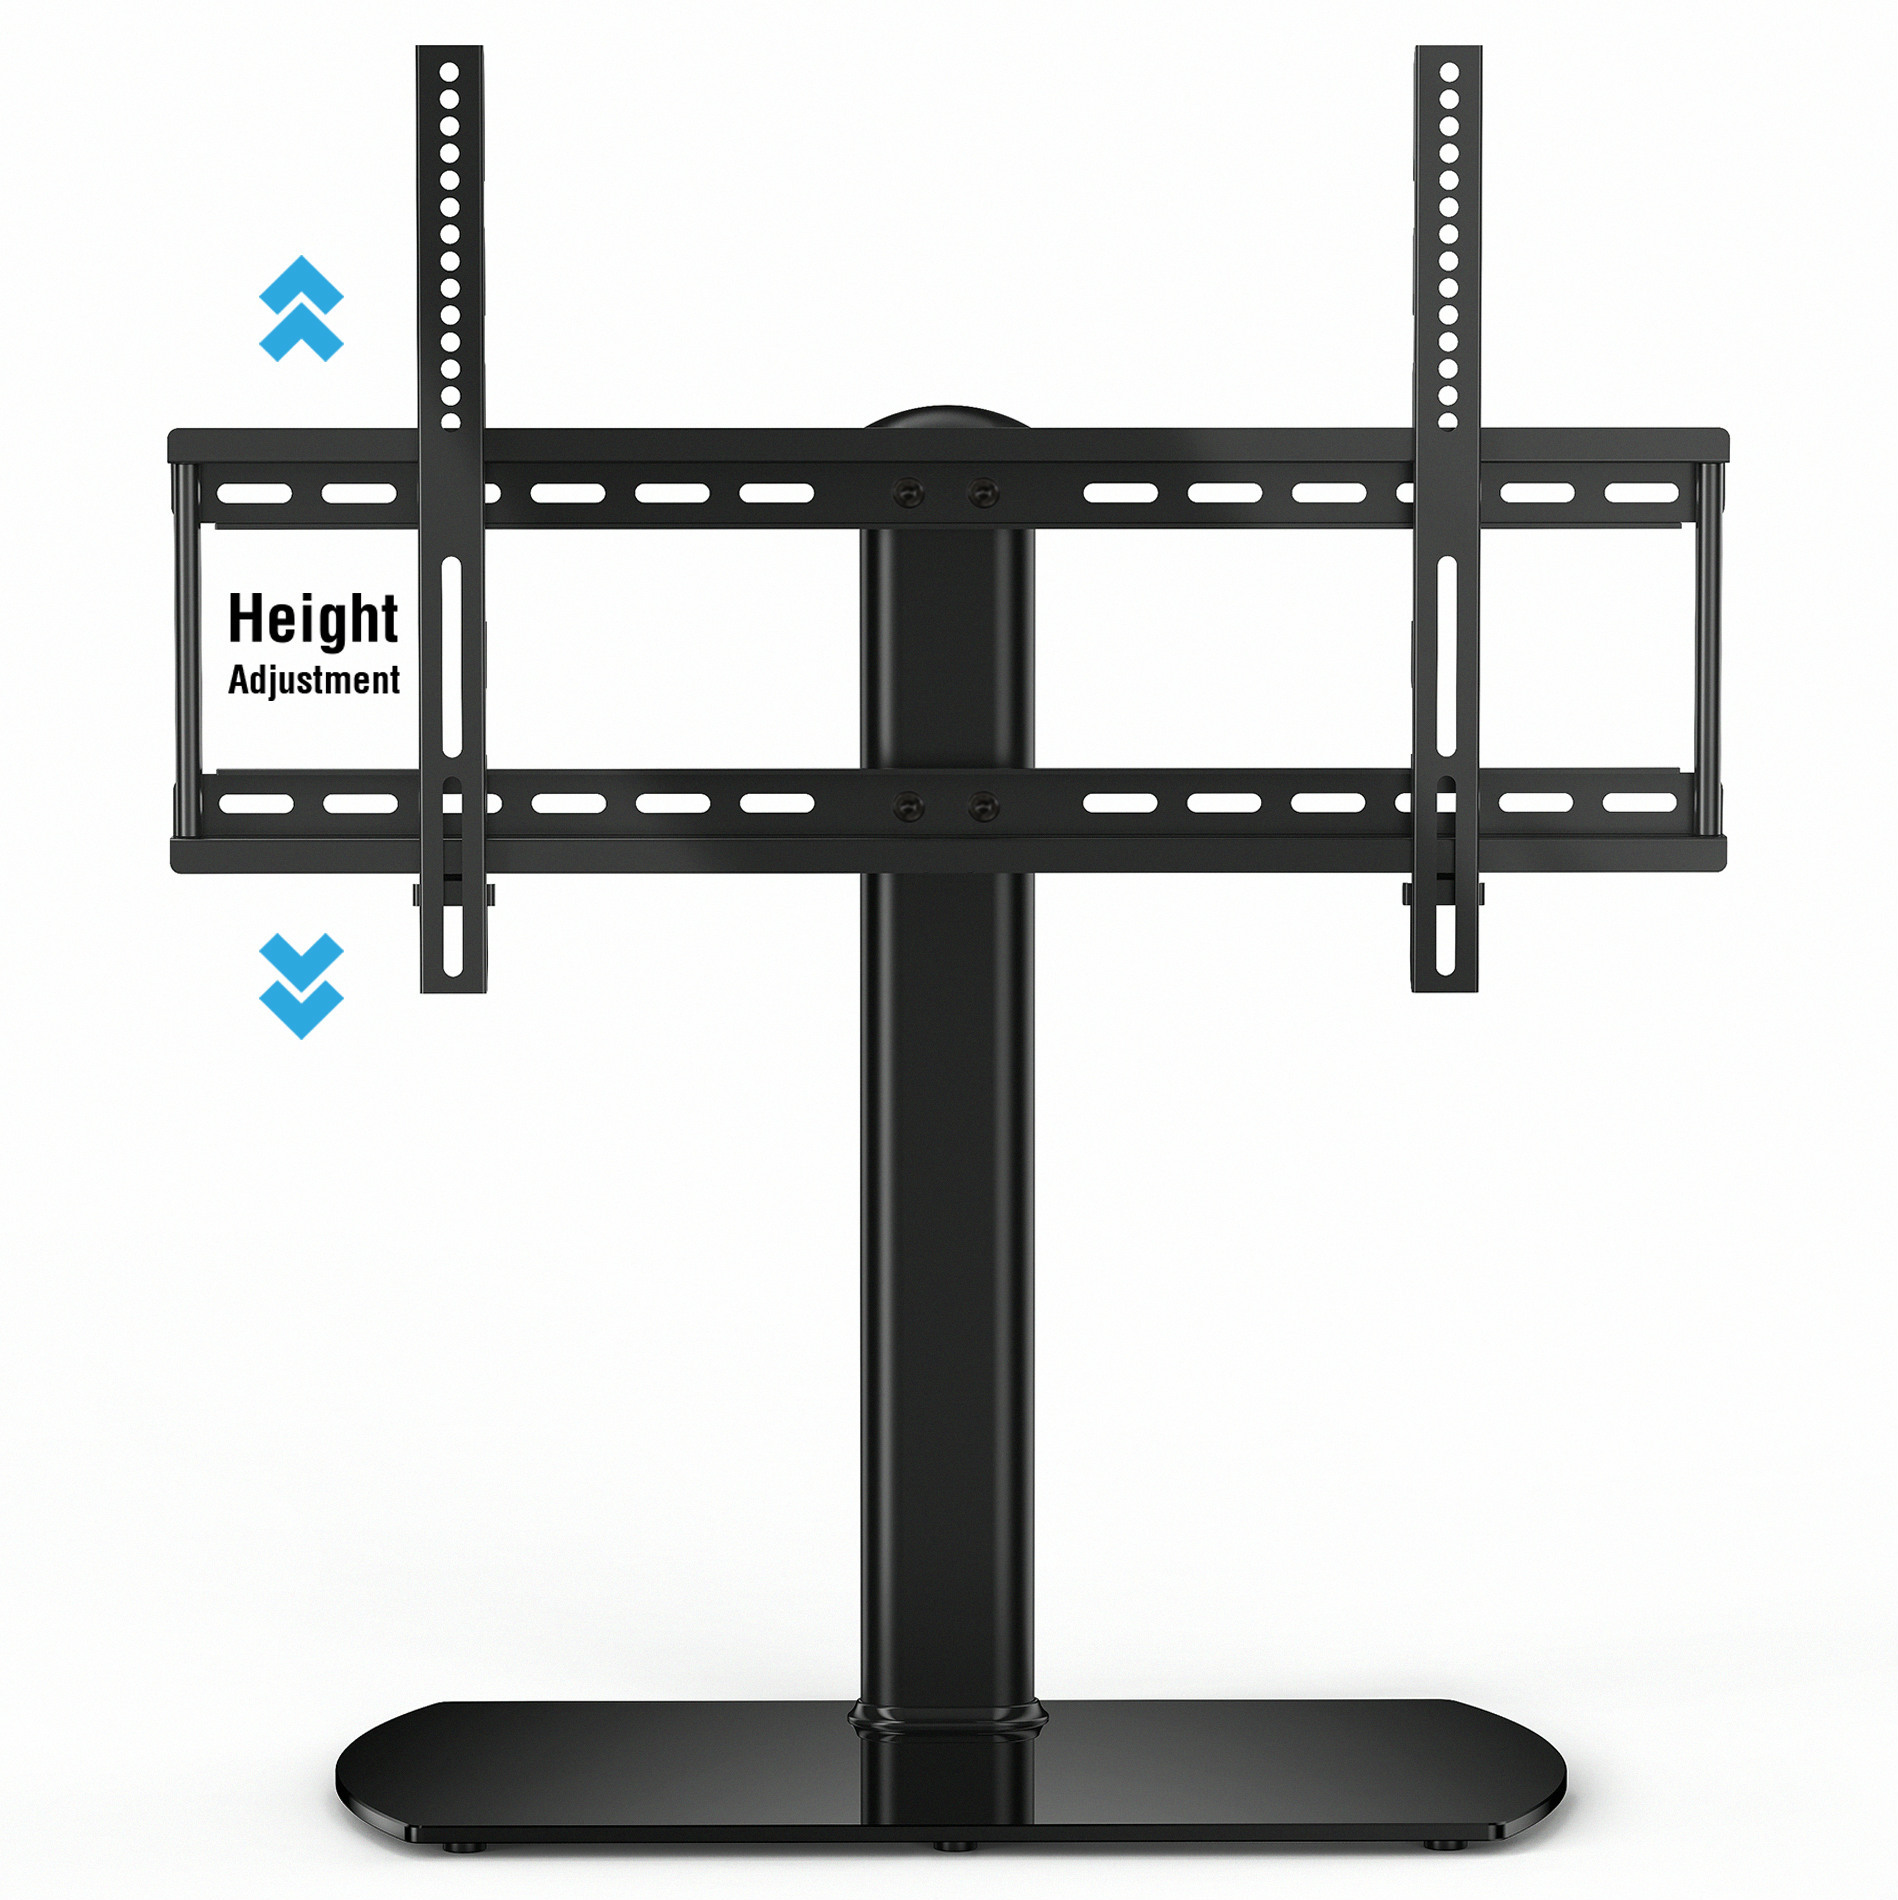 FITUEYES Universal TV Stand/ Base Tabletop TV Stand with Wall Mount for 32 to 60 inch Flat screen Tvs/xbox One/tv Component Black(TT107001GB)